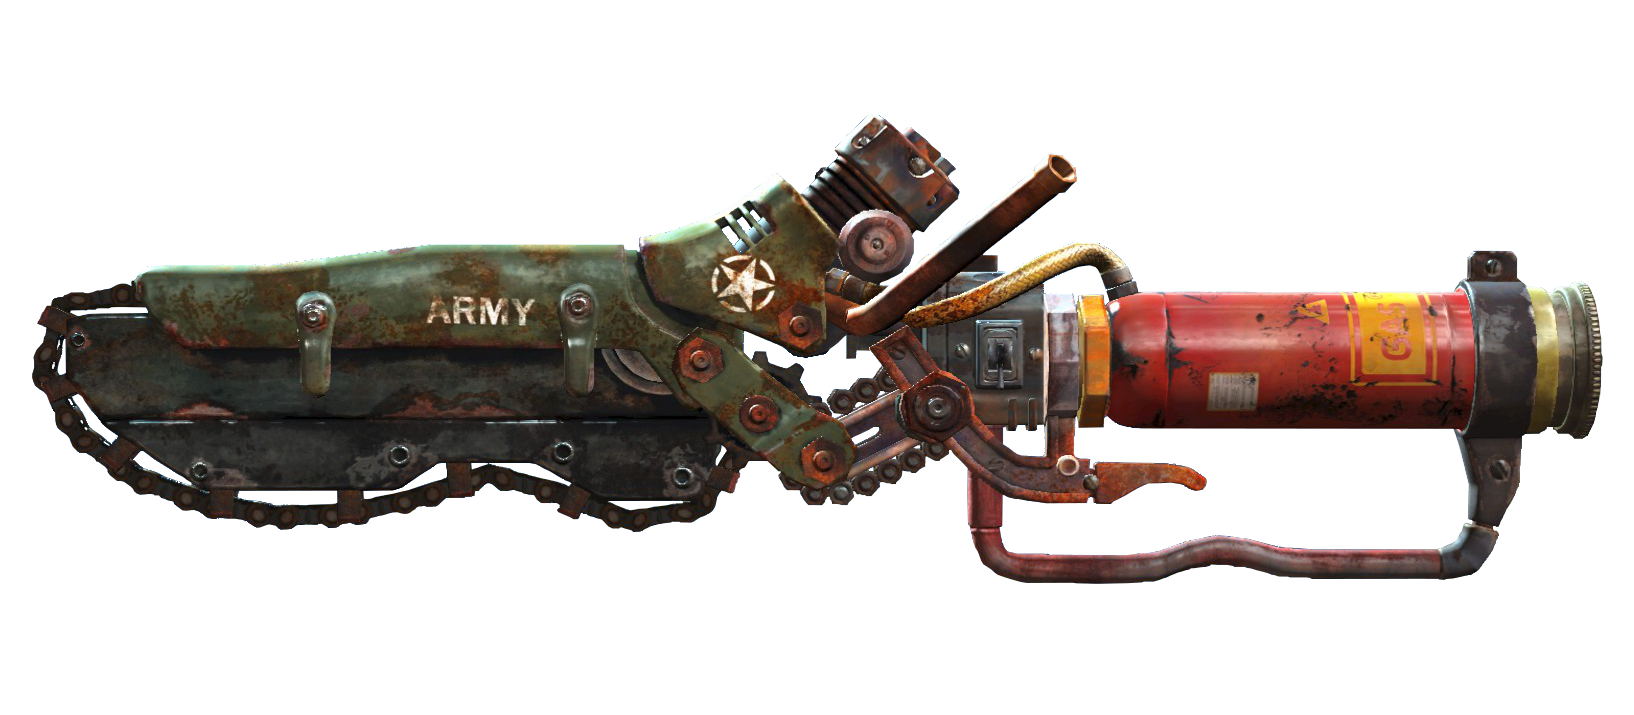 Little big planet cardboard laser cannon png. Image ripper fallout wiki